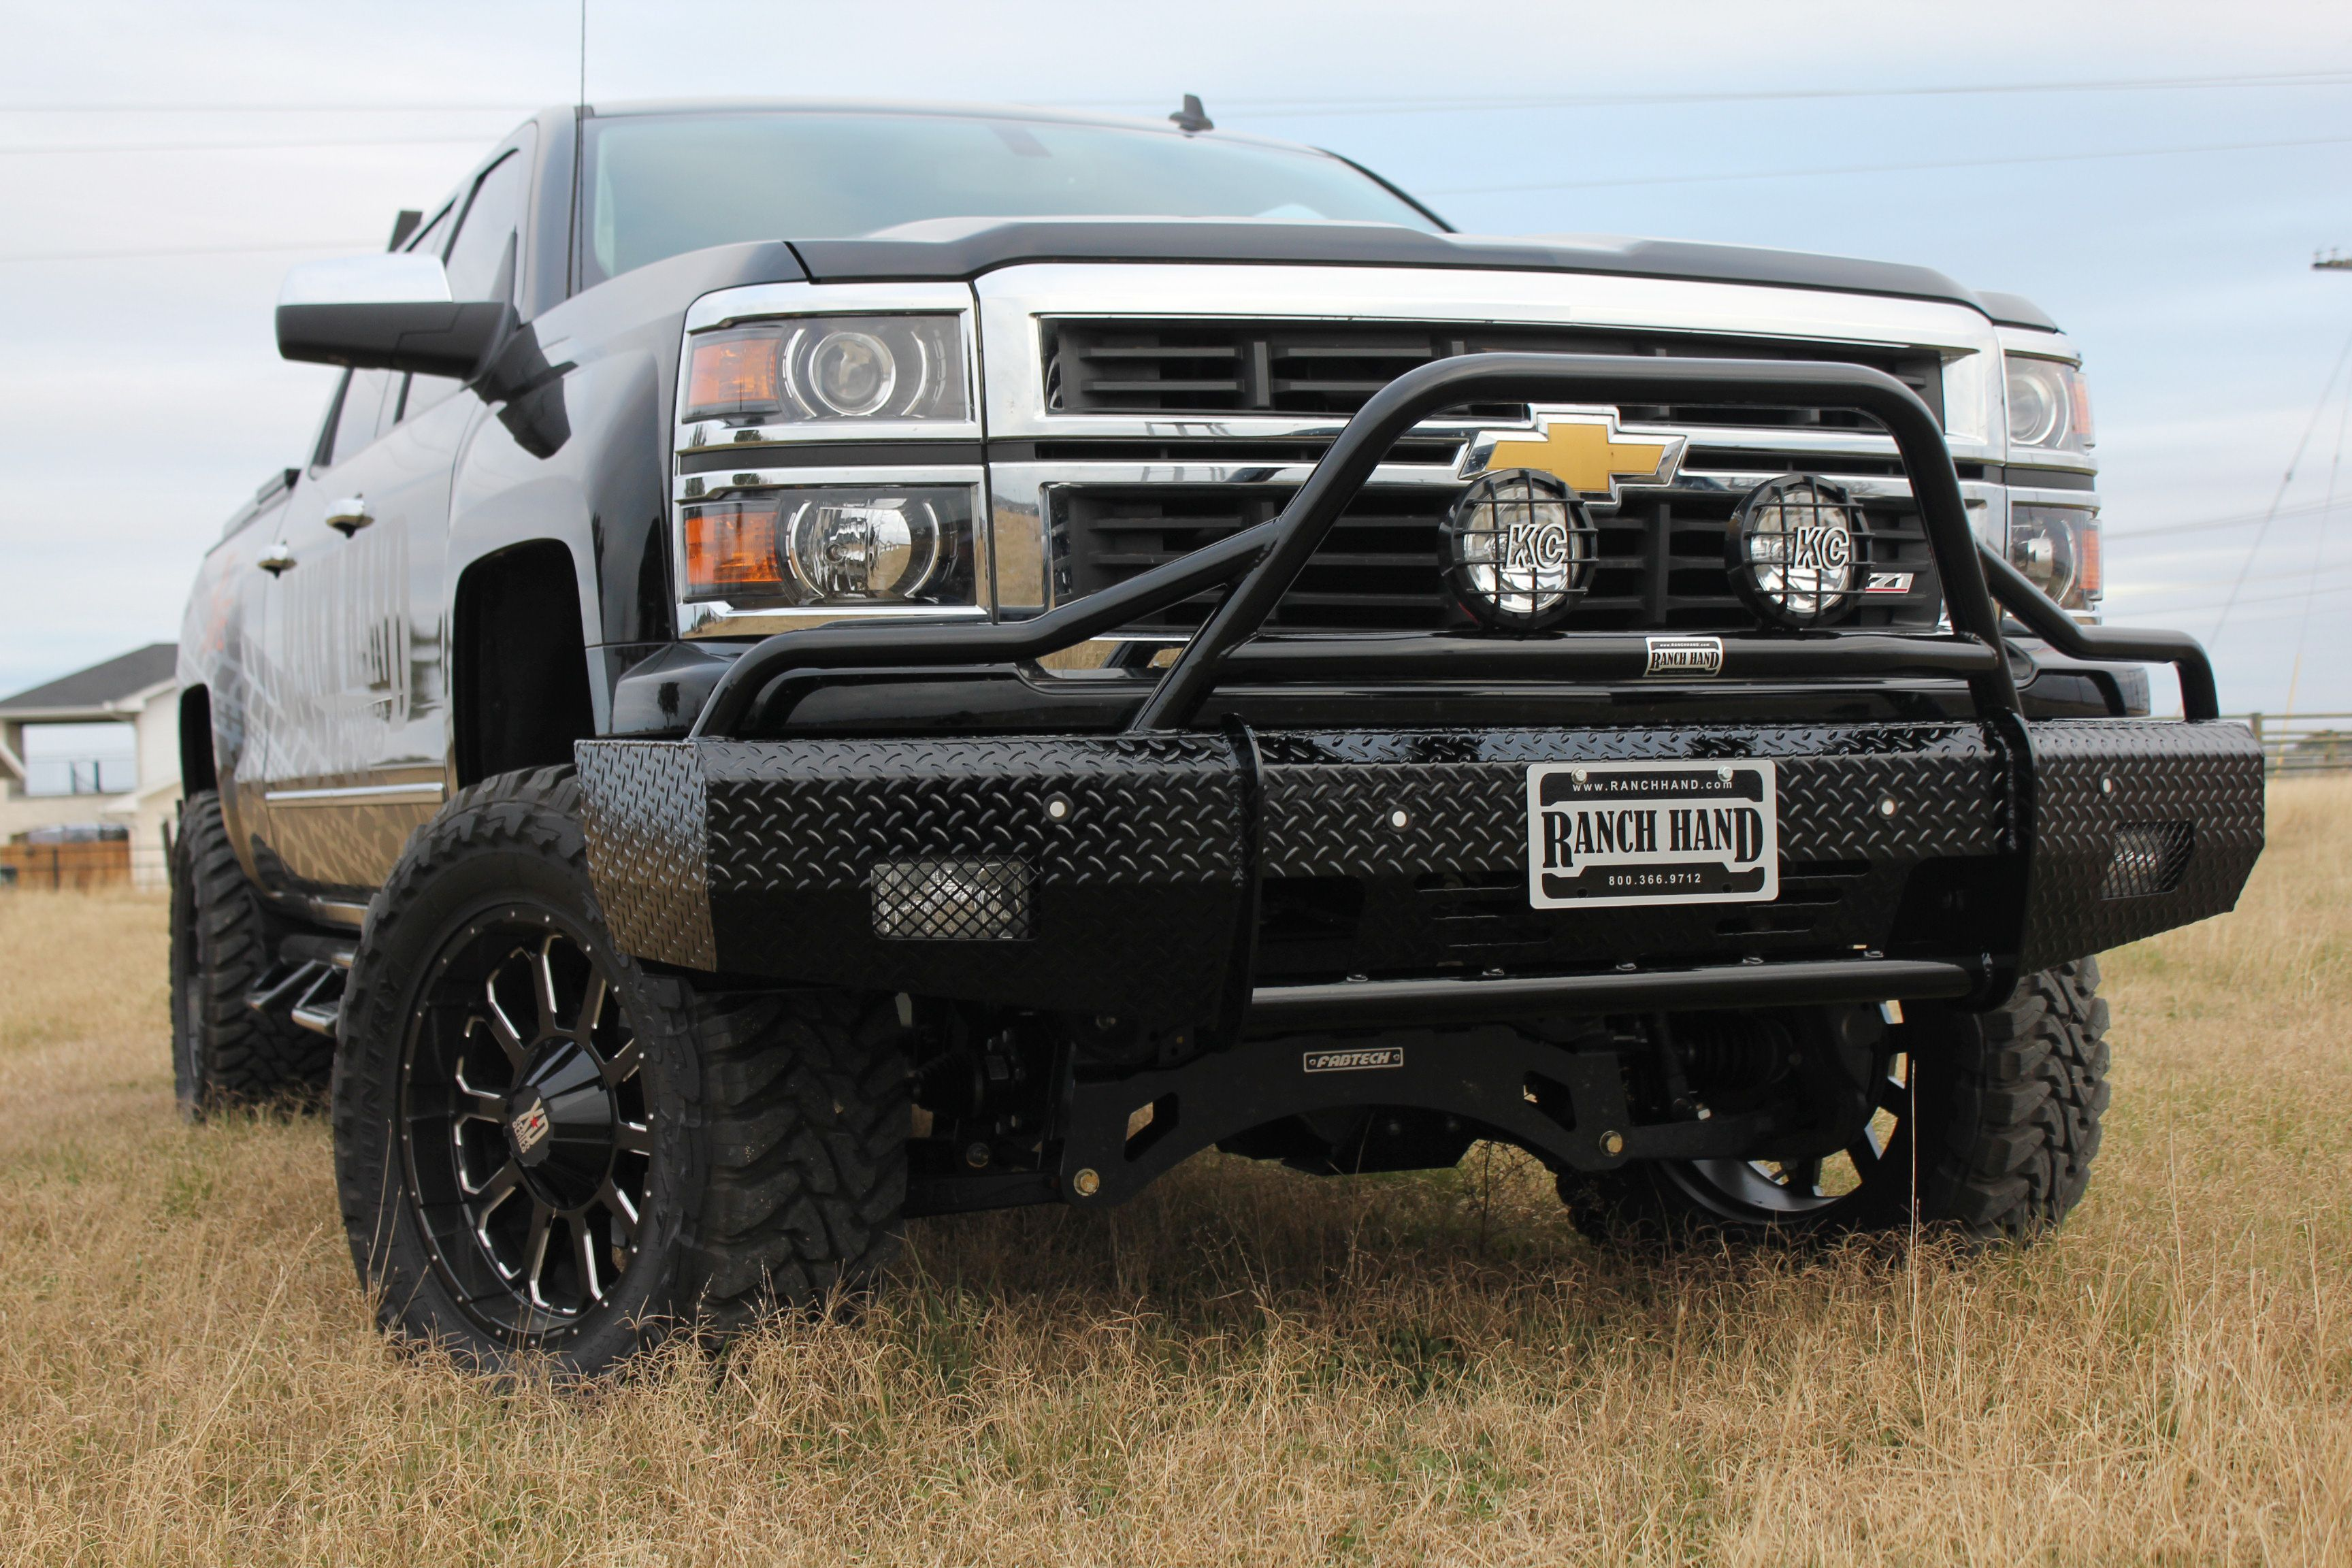 Ranch Hand Be On The Safe Side Chevy Trucks Diesel Trucks Lifted Ford Trucks